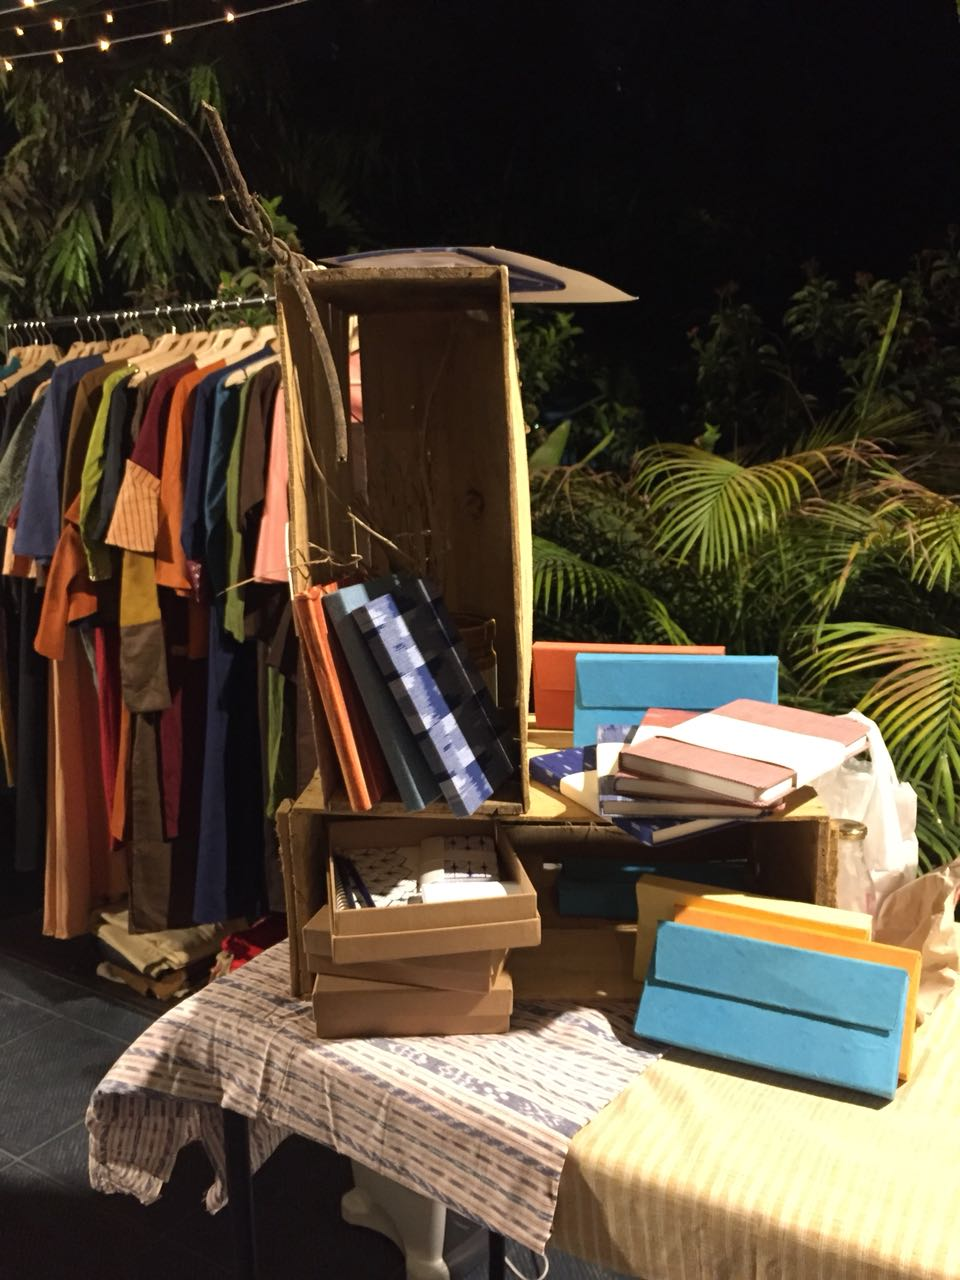 clothes and stationary items at night gallery